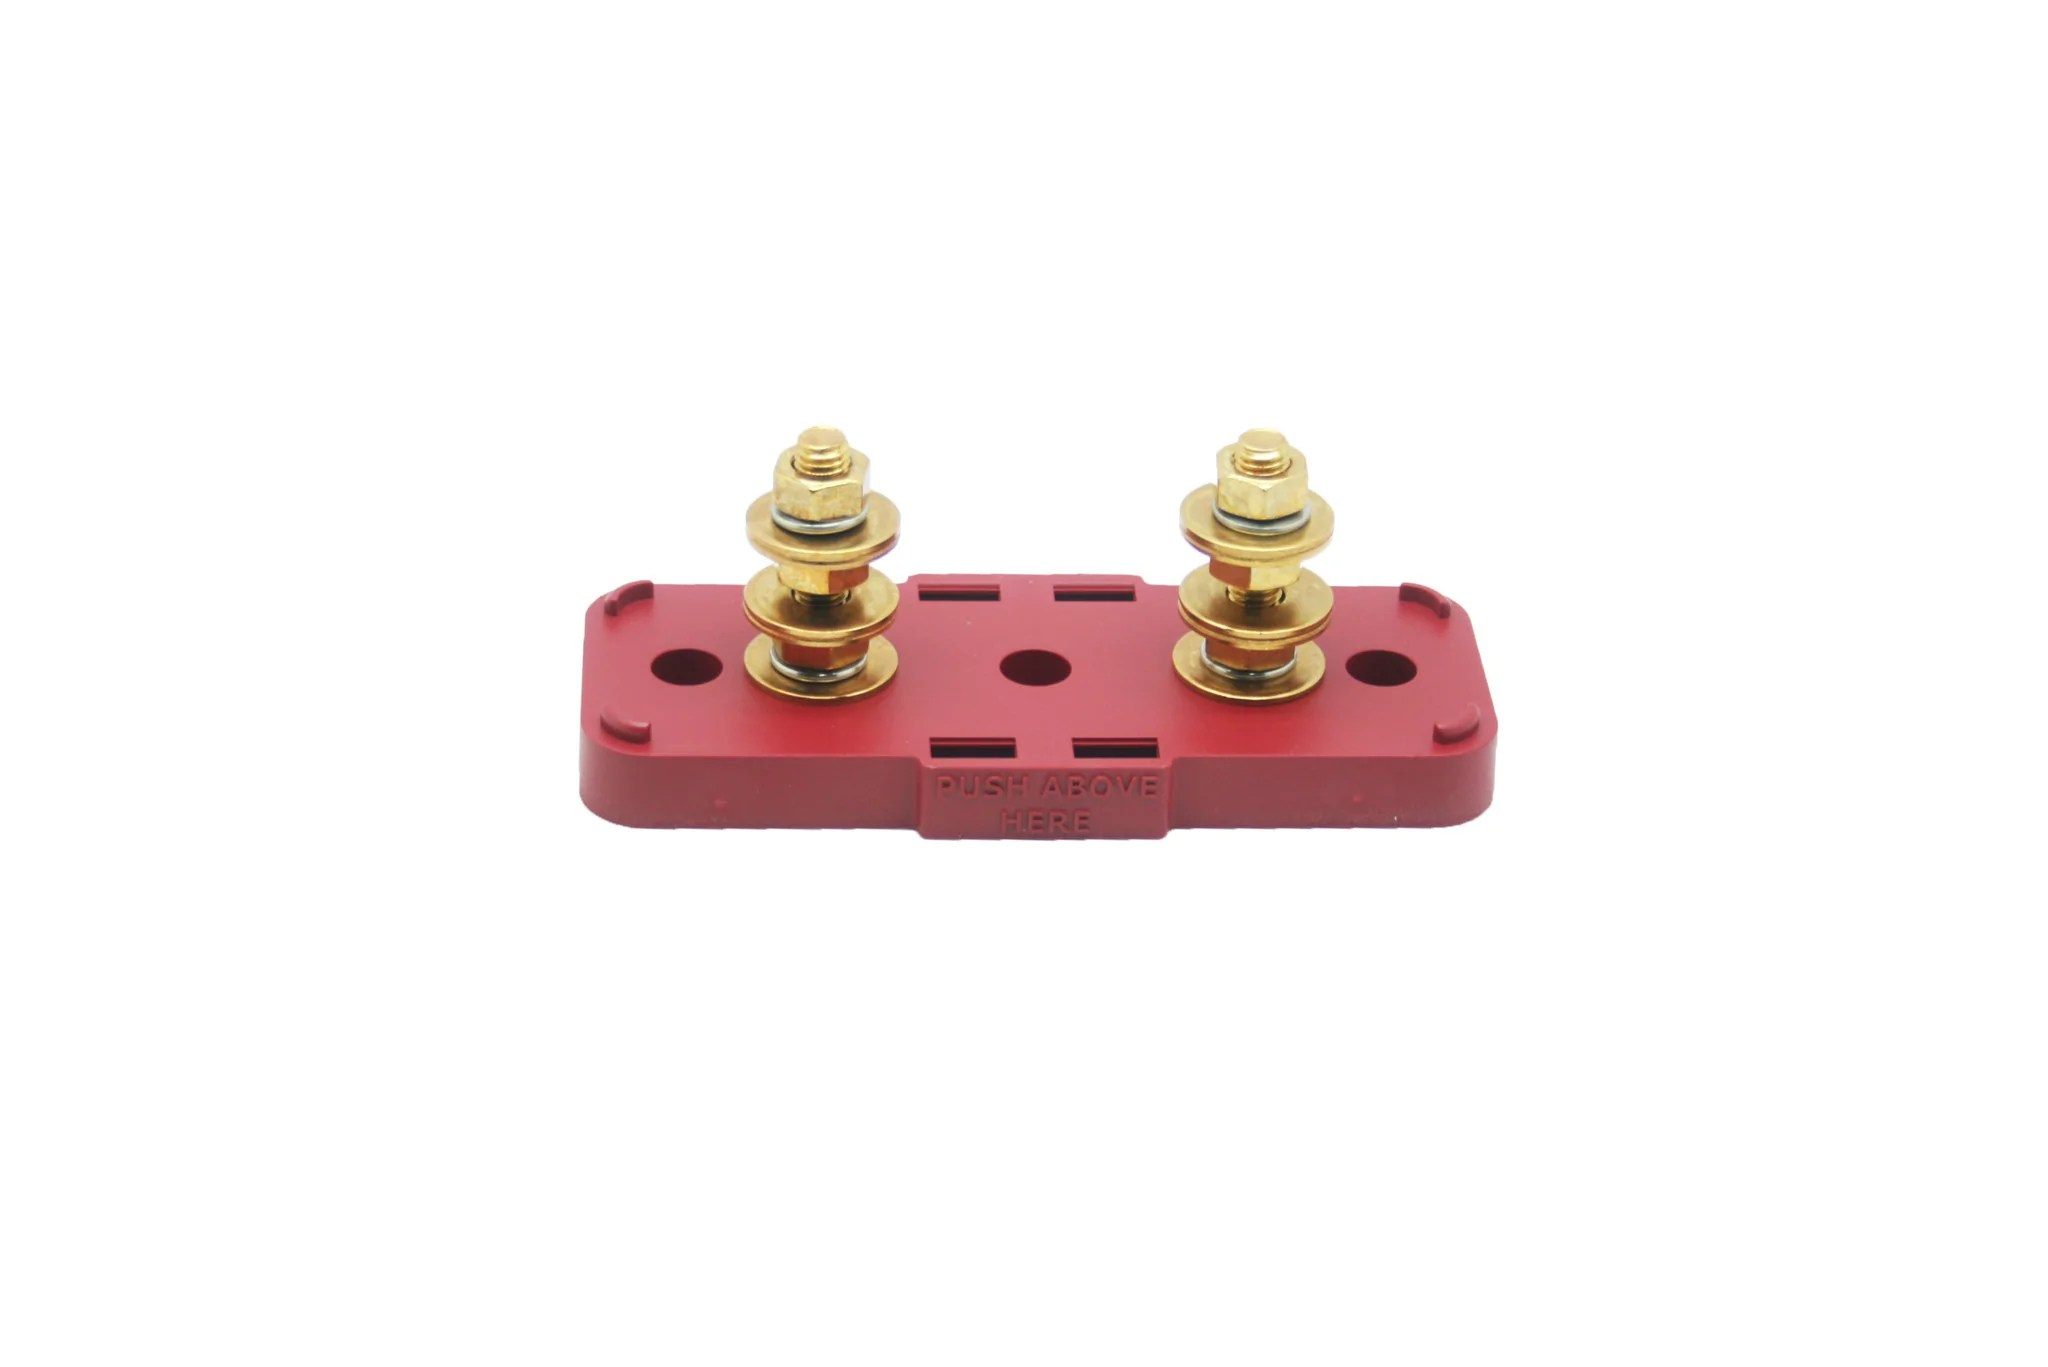 hight resolution of gold plated fuse holders m8 up to 500a m12 up to 1000a